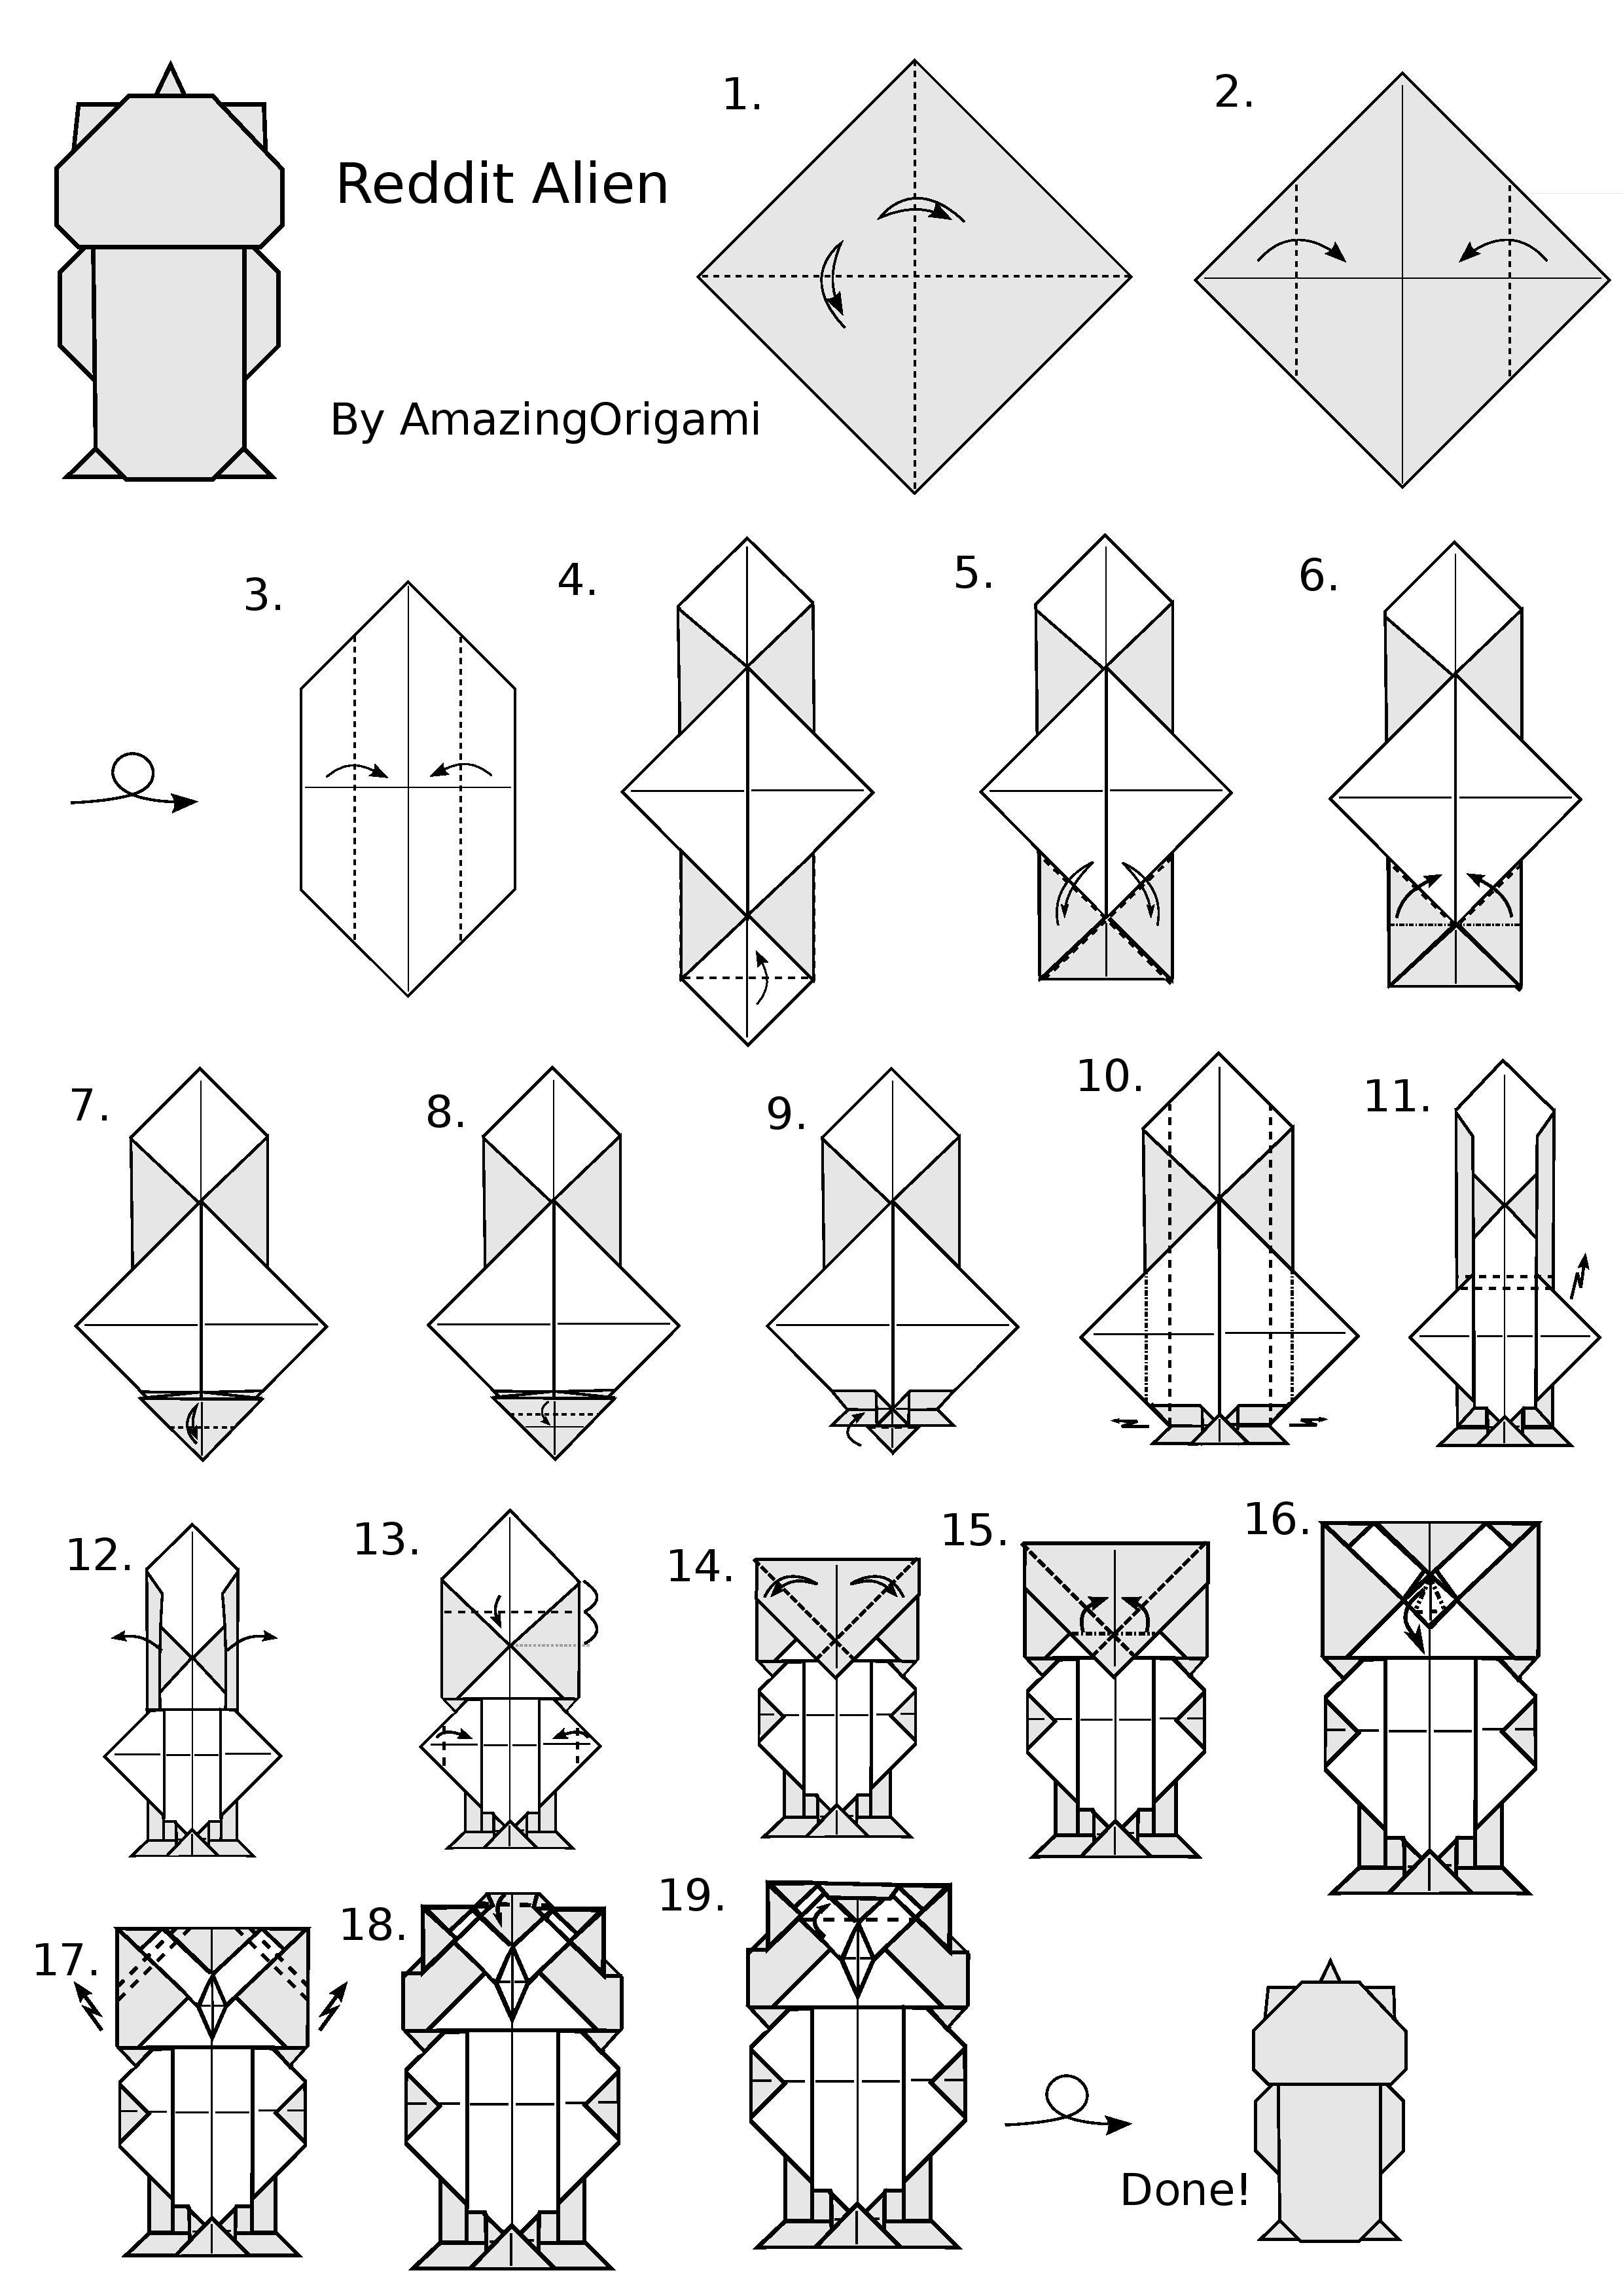 Cool Modular Origami Diagram 6 Pin Toggle Switch Wiring By Engedi Ming On